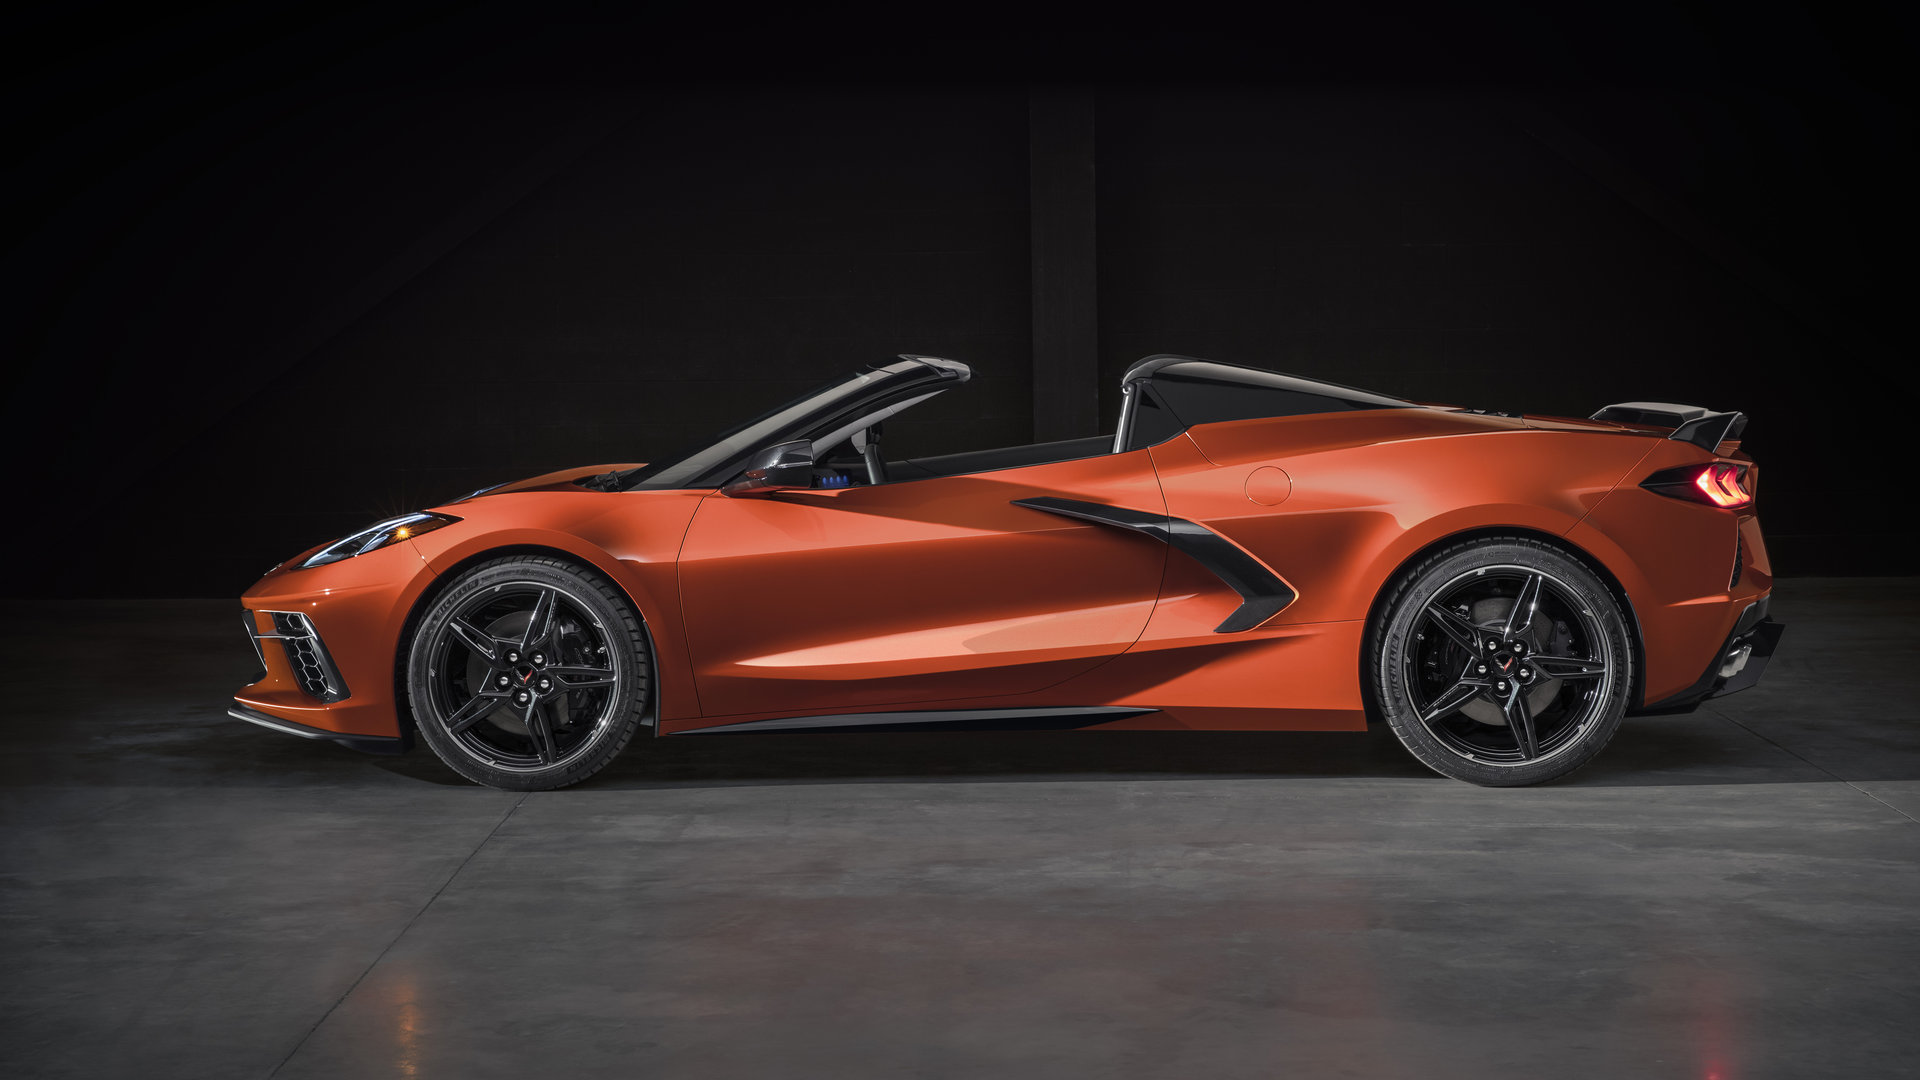 2020 Chevrolet Corvette Convertible hardtop 07